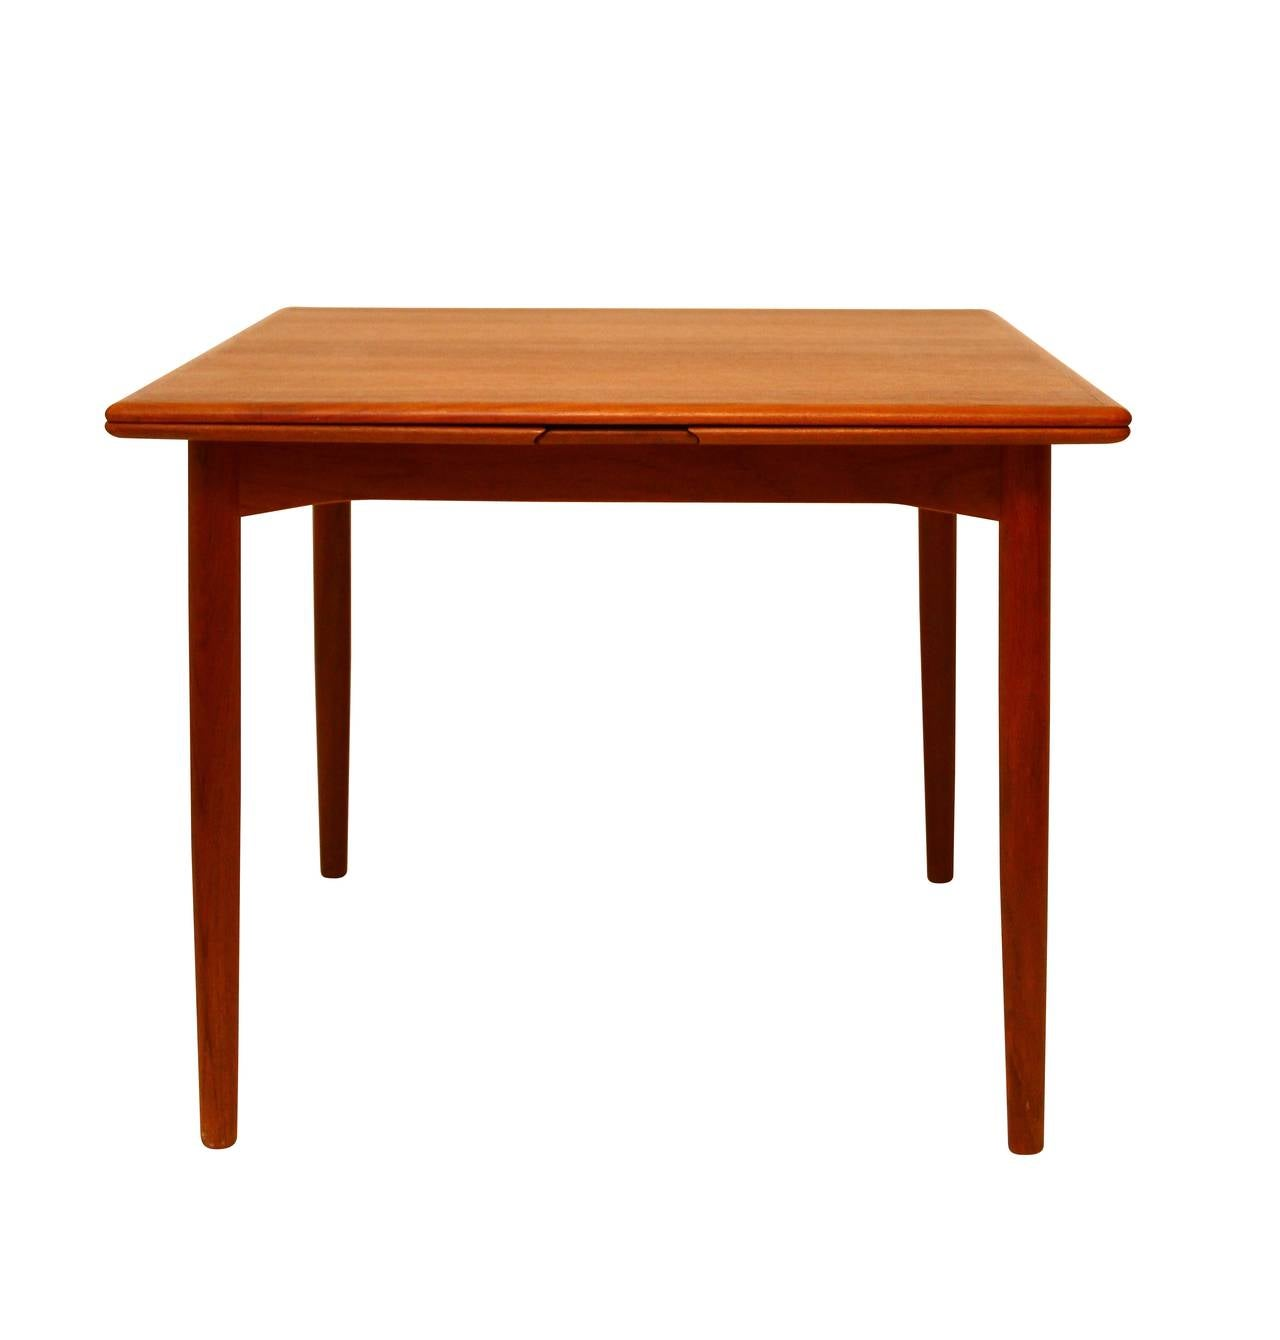 extension dining table teak danish modern at 1stdibs. Black Bedroom Furniture Sets. Home Design Ideas